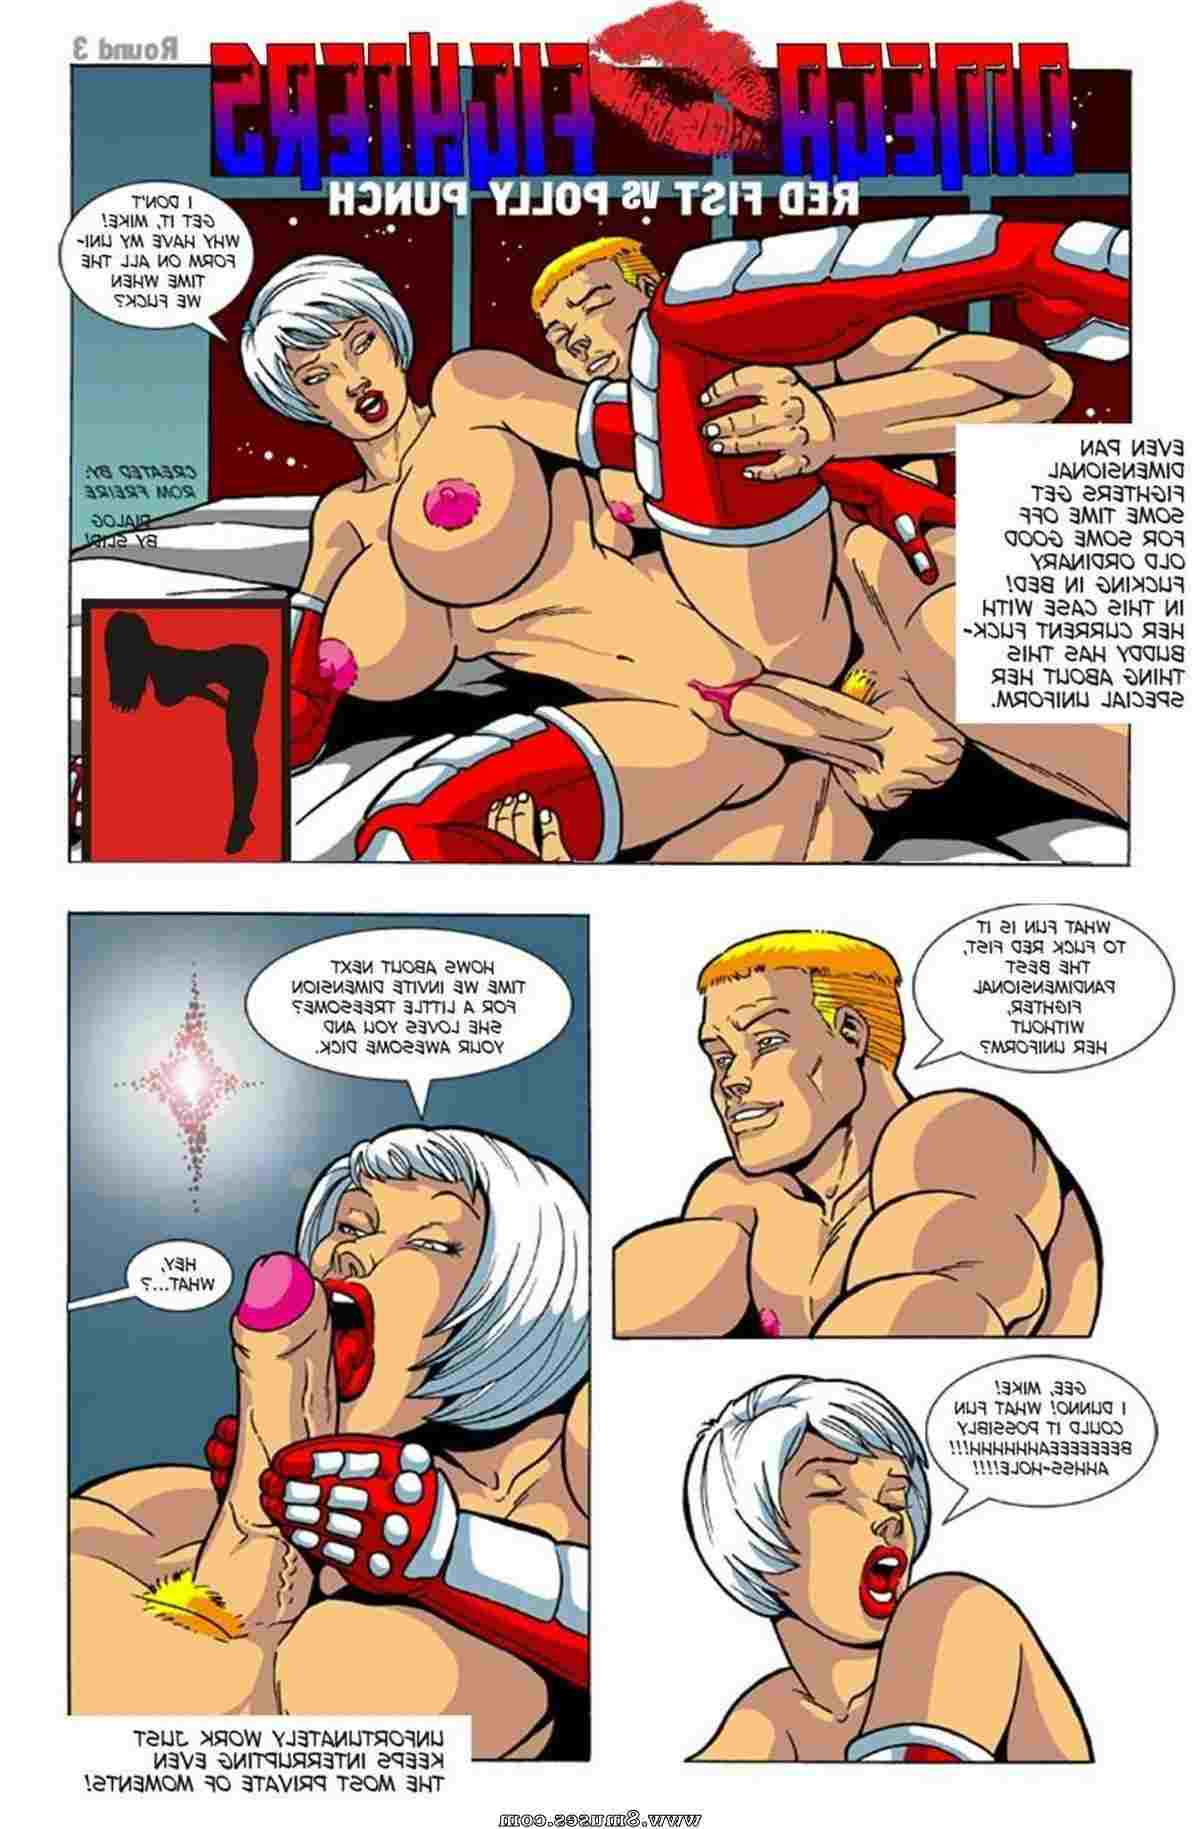 Central-Comics/Monster-Babe-Central/Omega-Fighters Omega_Fighters__8muses_-_Sex_and_Porn_Comics_11.jpg